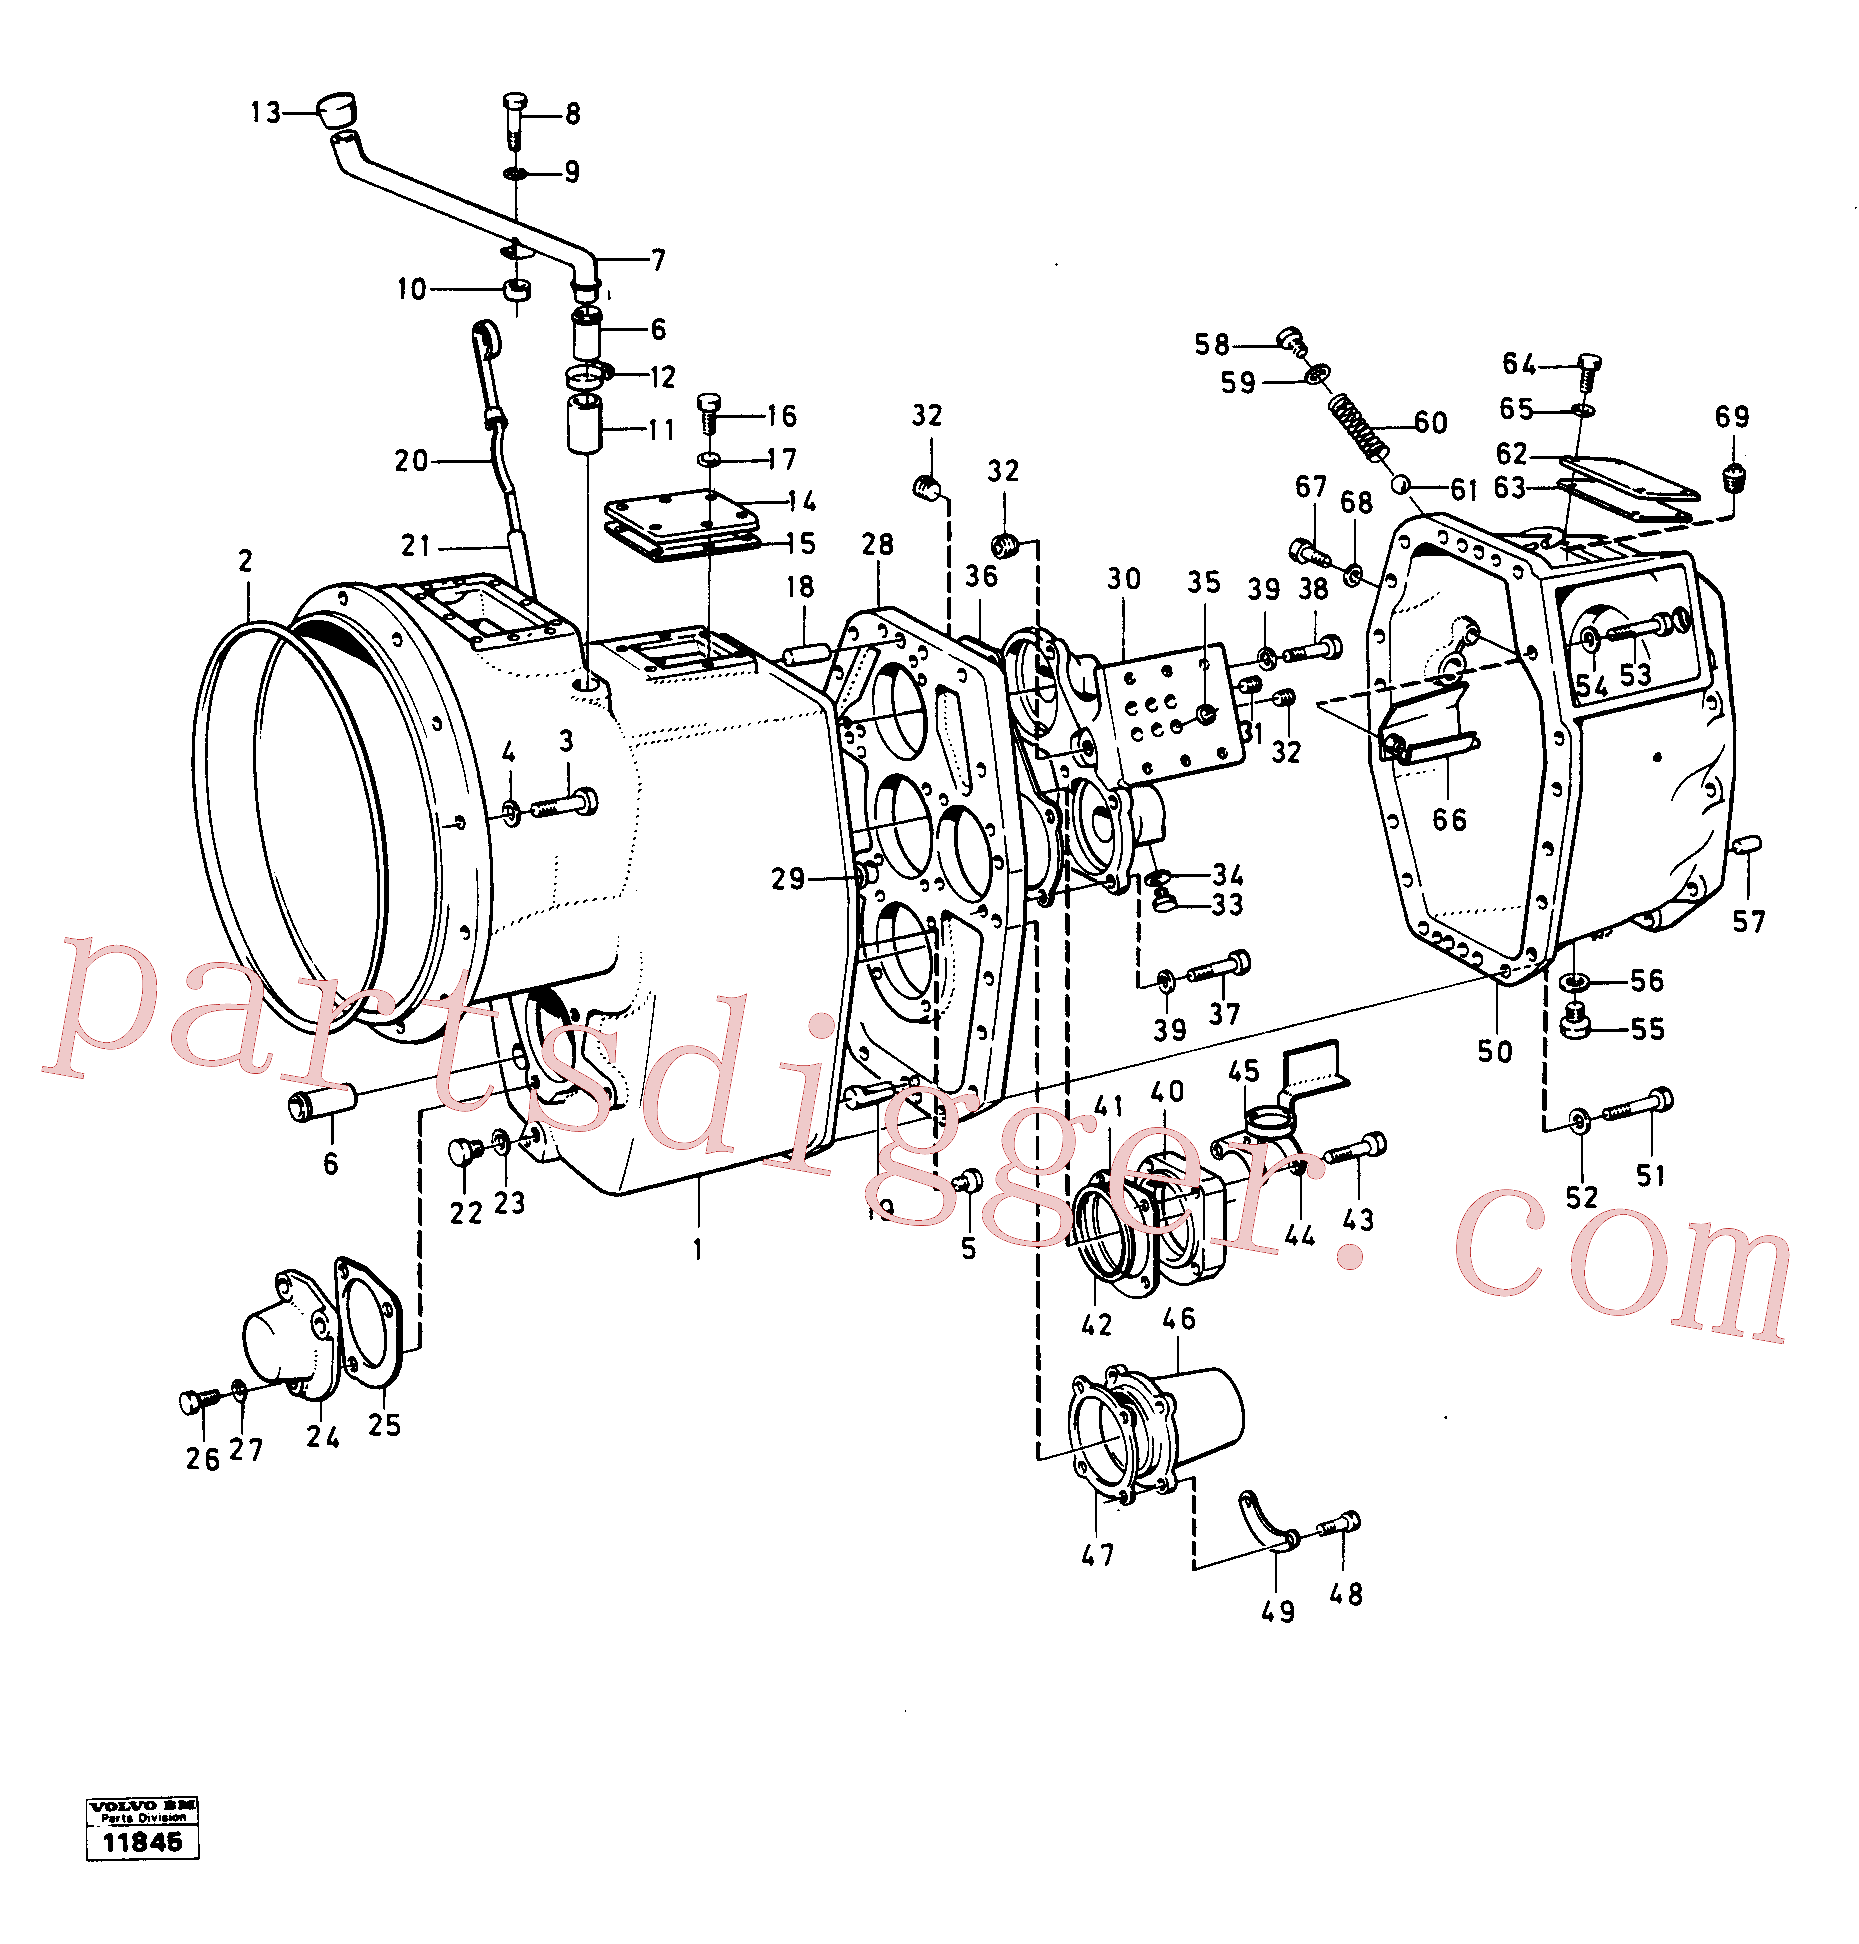 VOE14023978 for Volvo Housing,covers and boltings(11845 assembly)